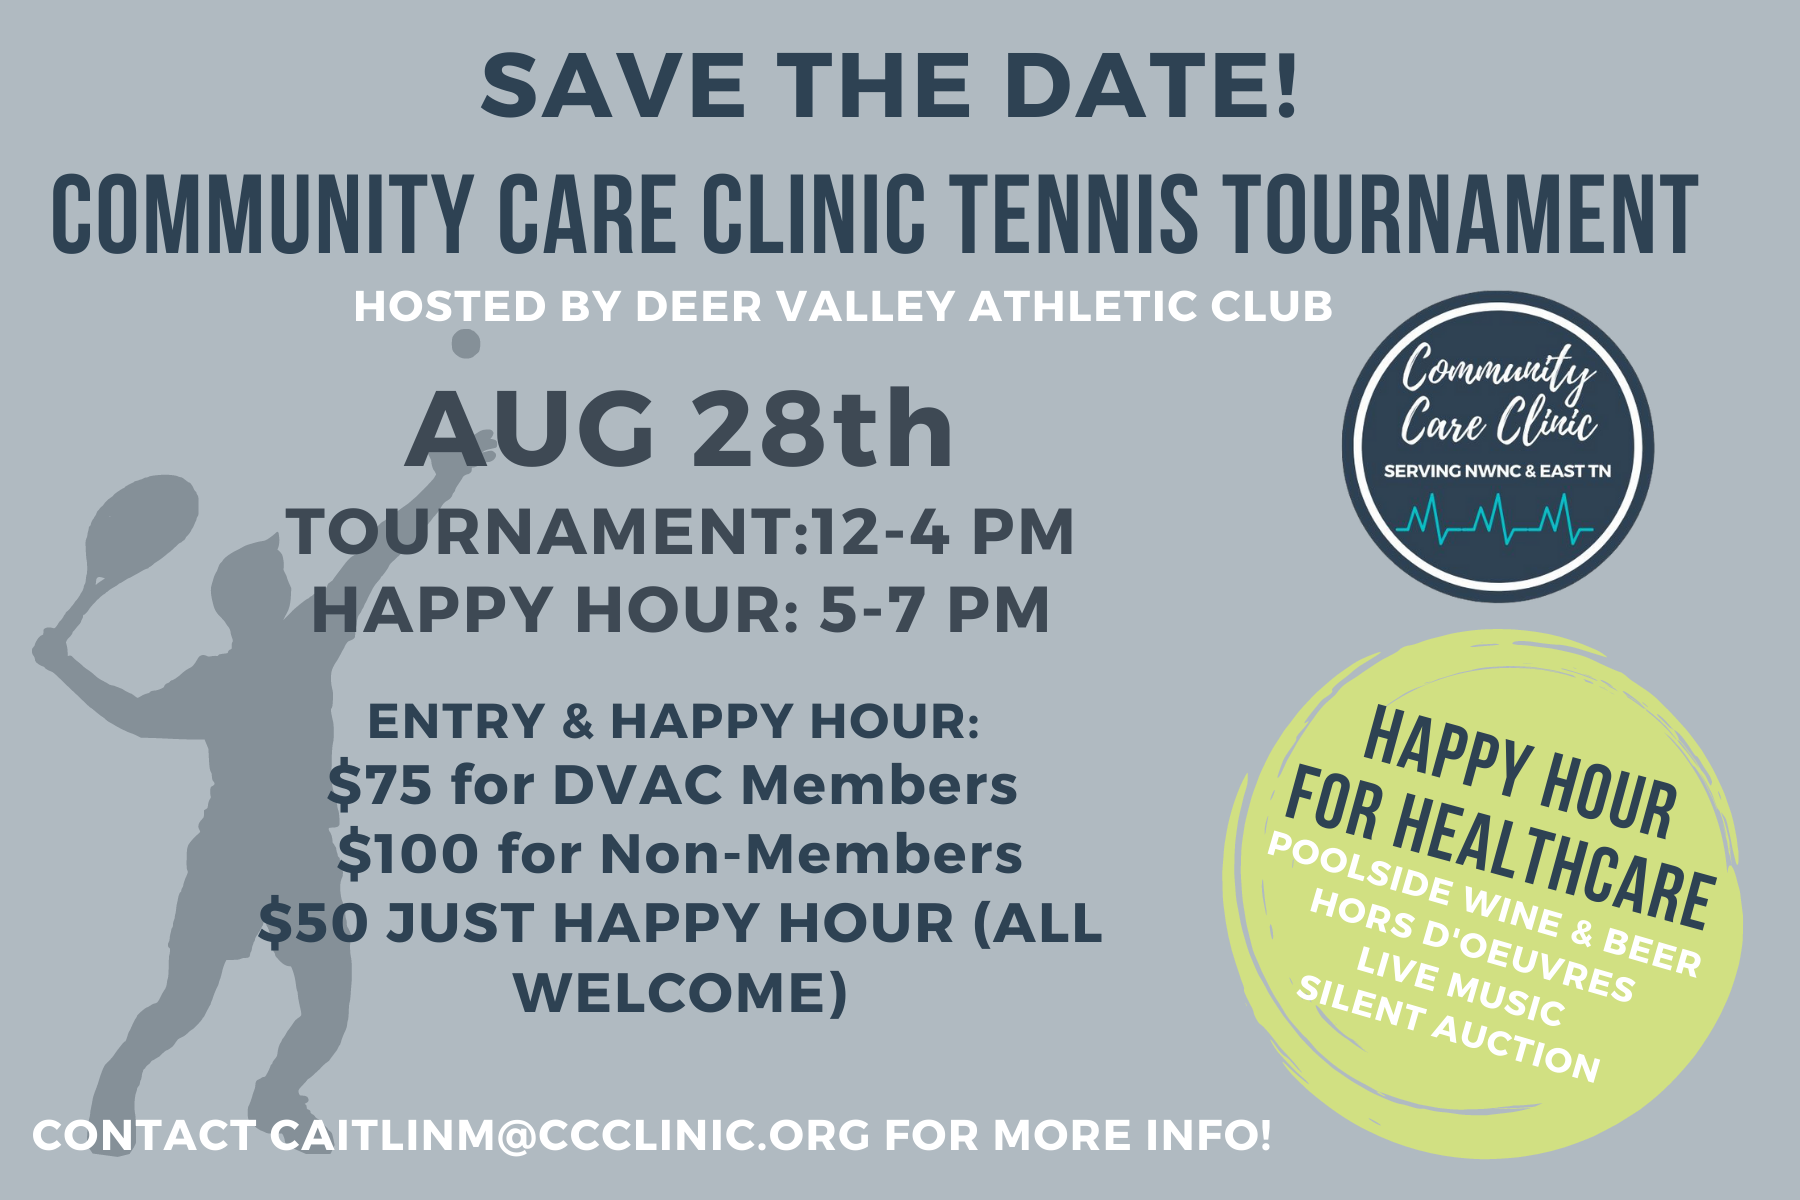 TENNIS TOURNAMENT IS BACK